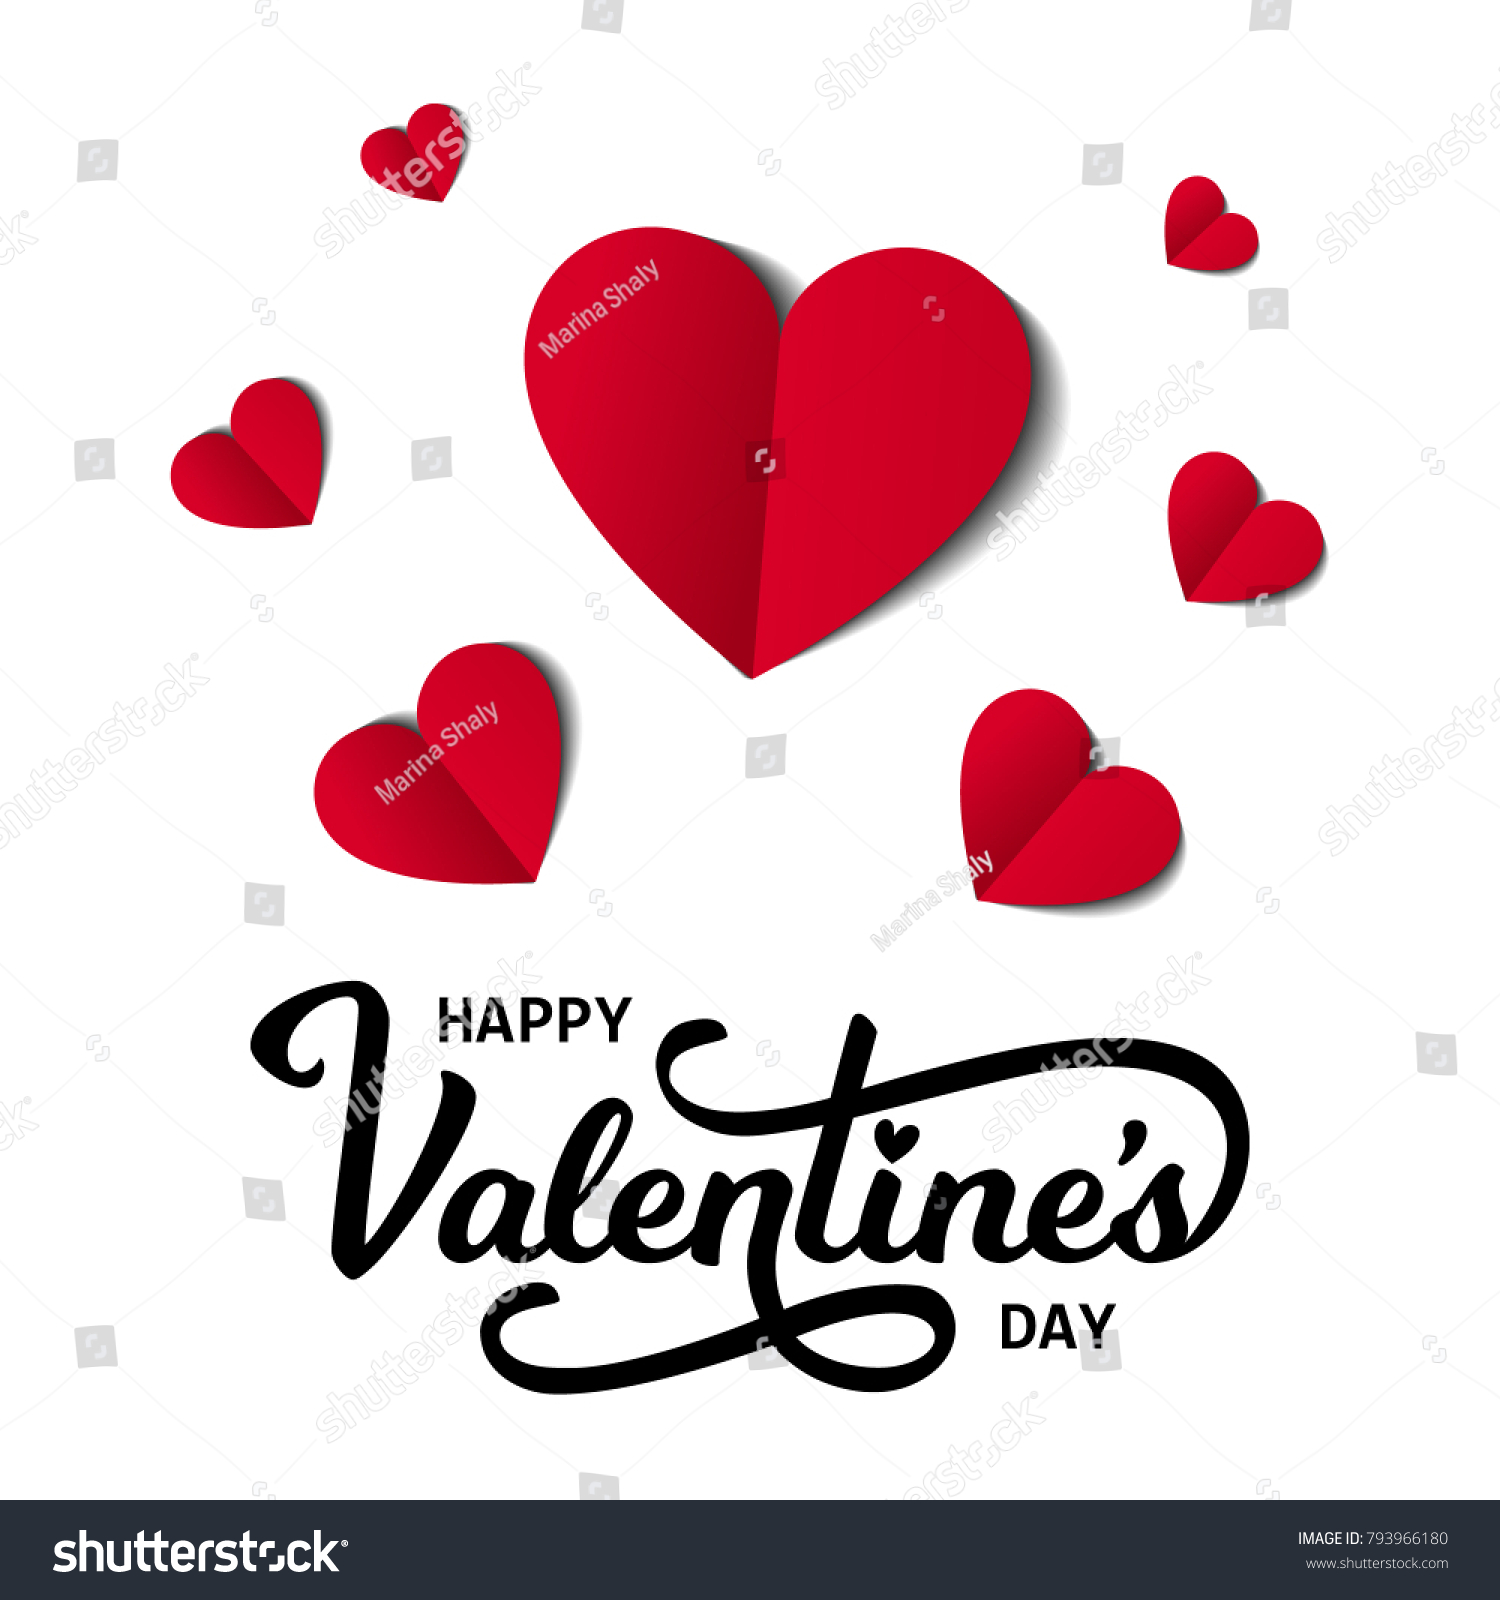 Happy Valentines Day Card With Text And Hearts Vector Illustration